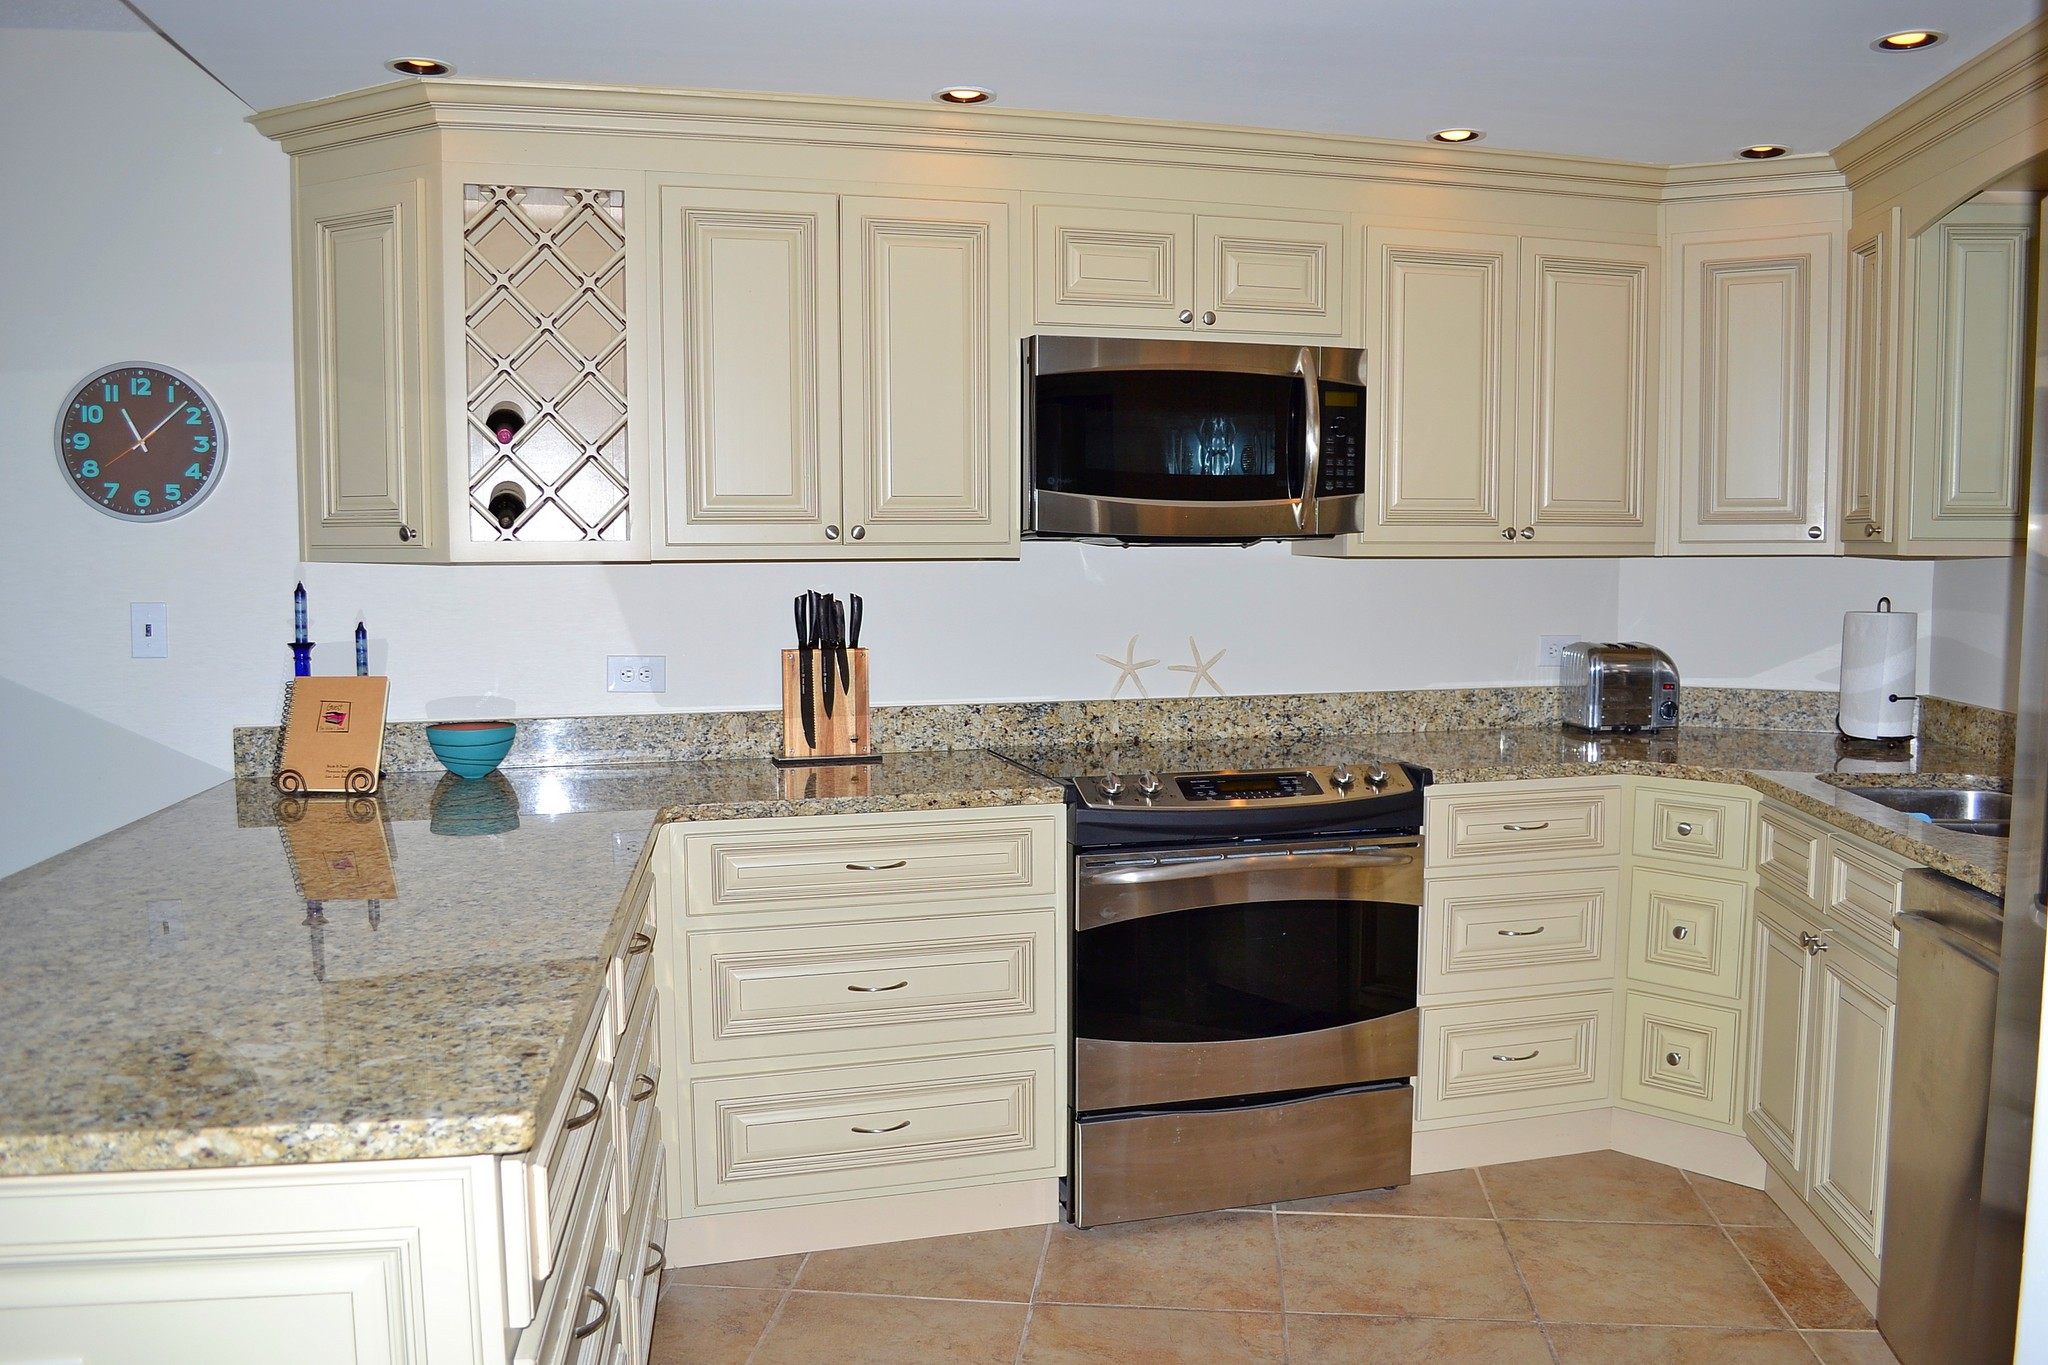 BEACHSIDE 1 4122: Place To Stay On Vacation 2 Bedrooms 2 Full ...